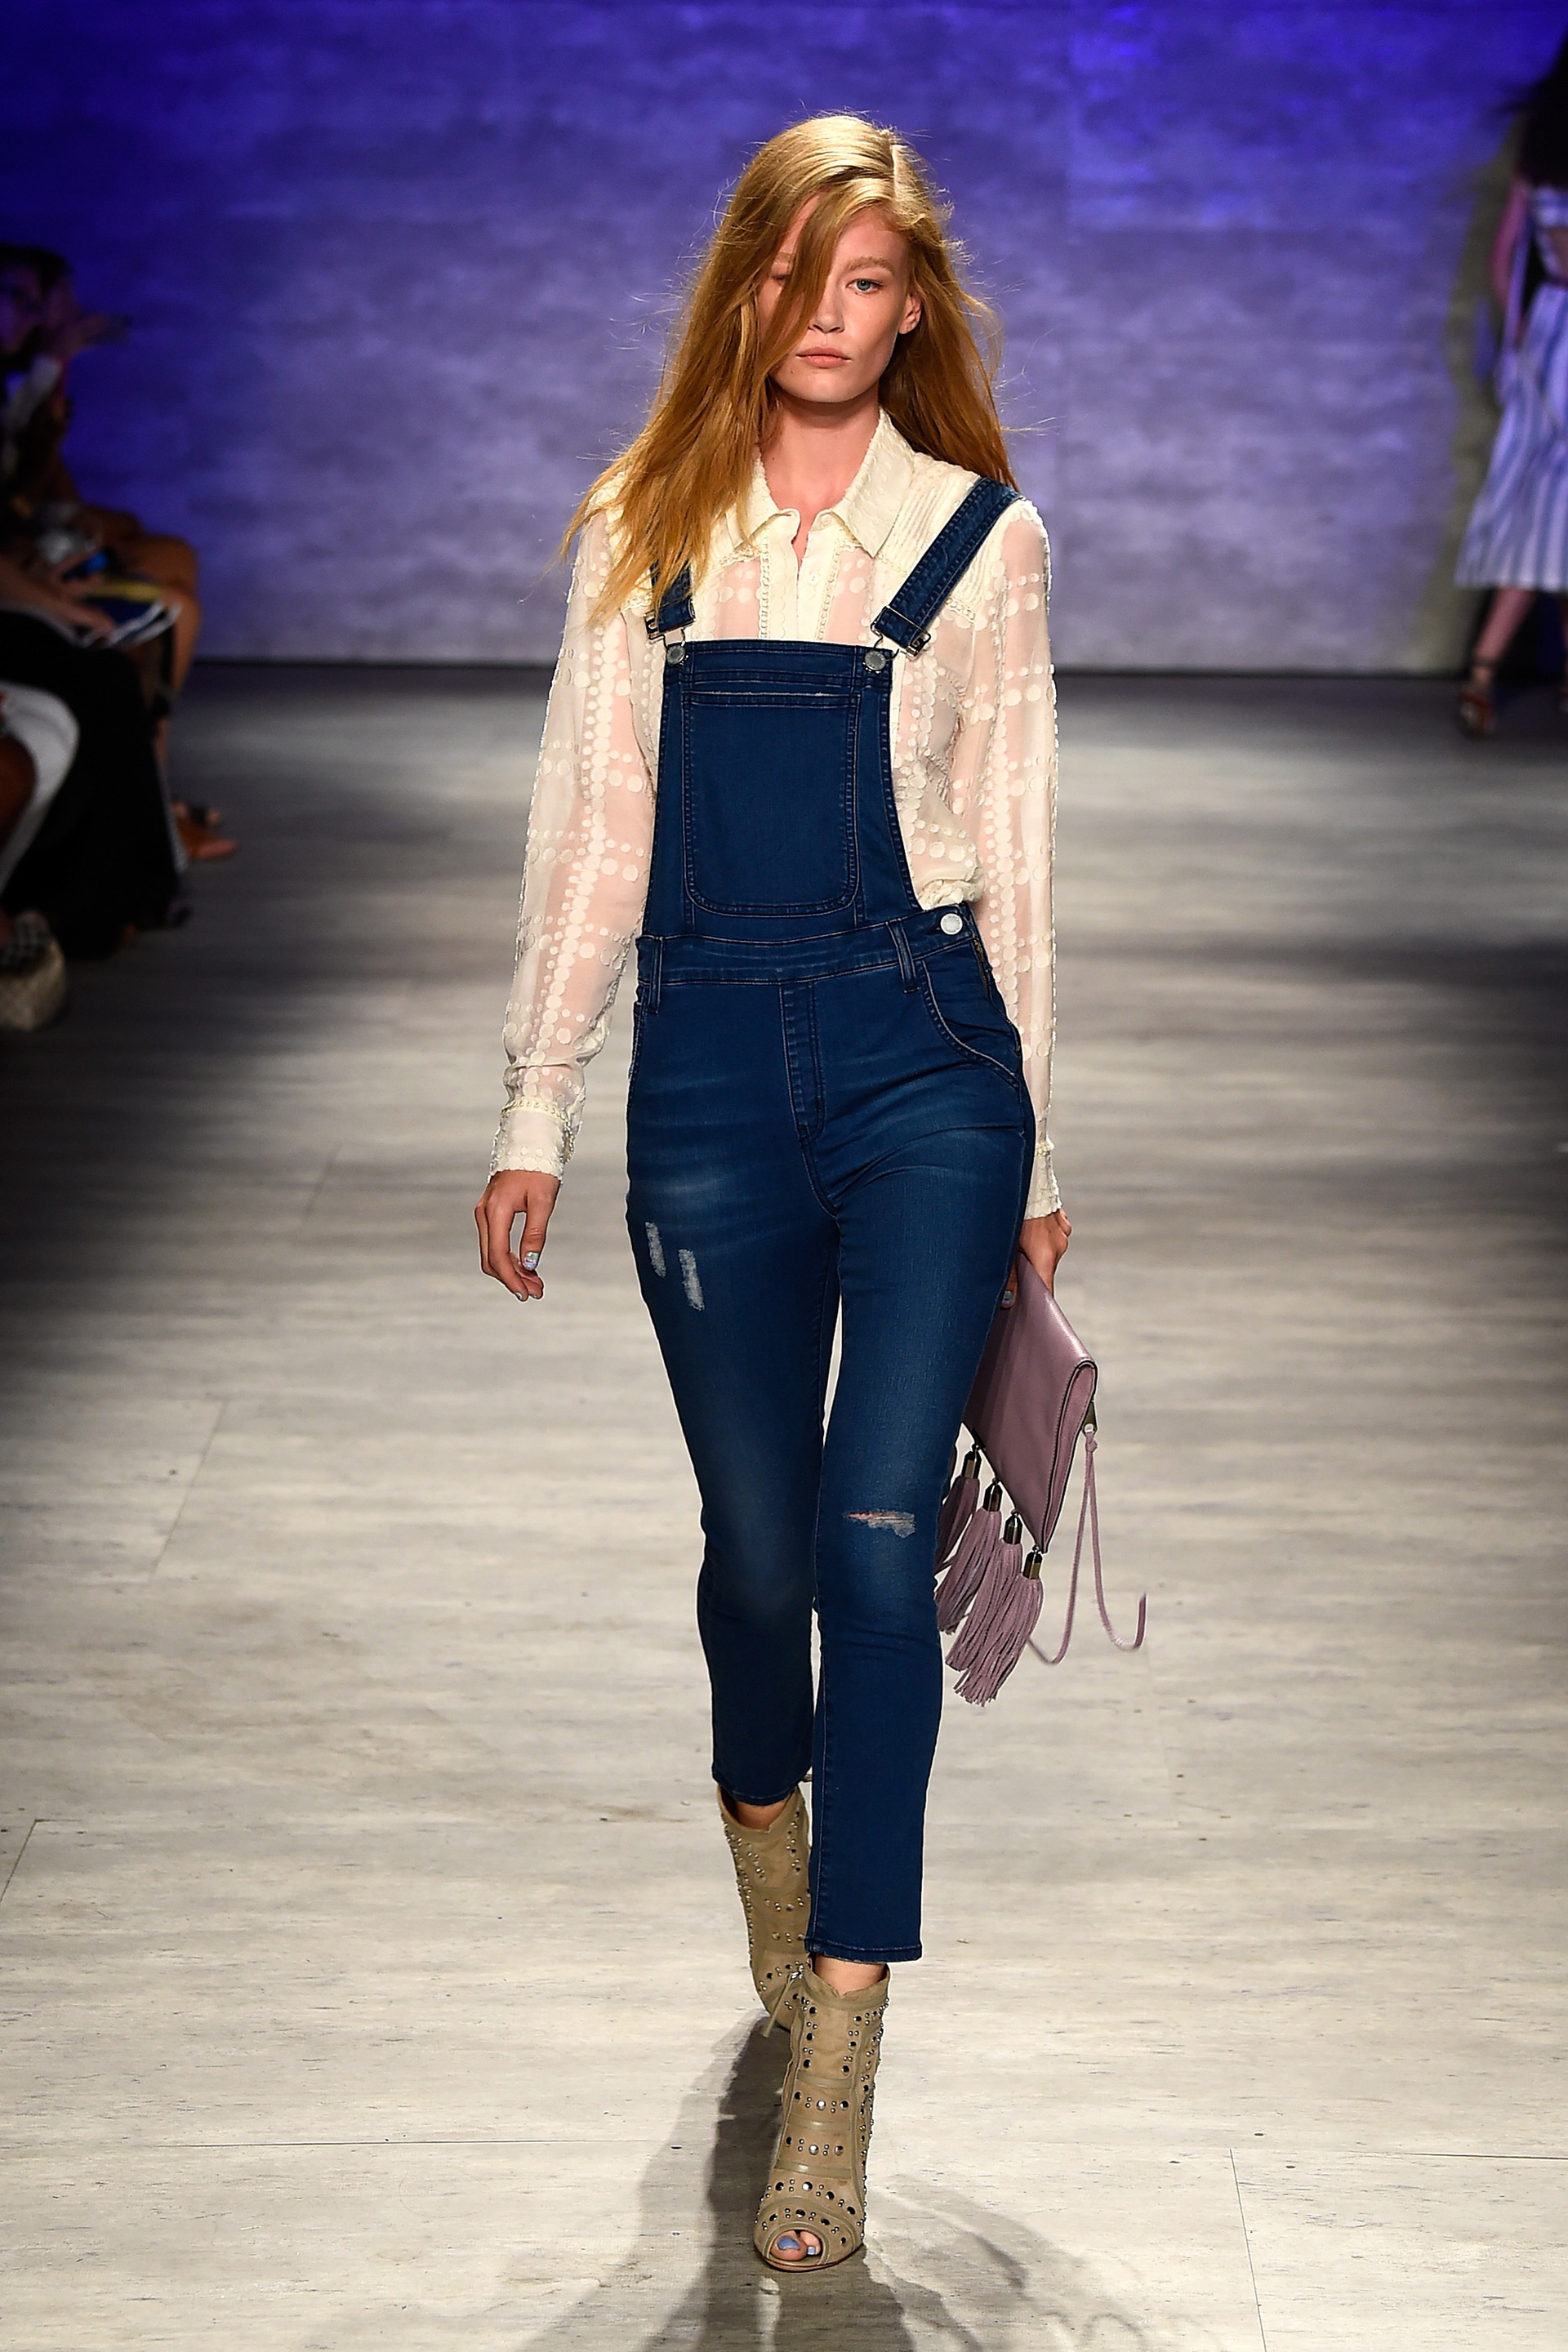 Must-see outfits from Rebecca Minkoff's spring collection 7